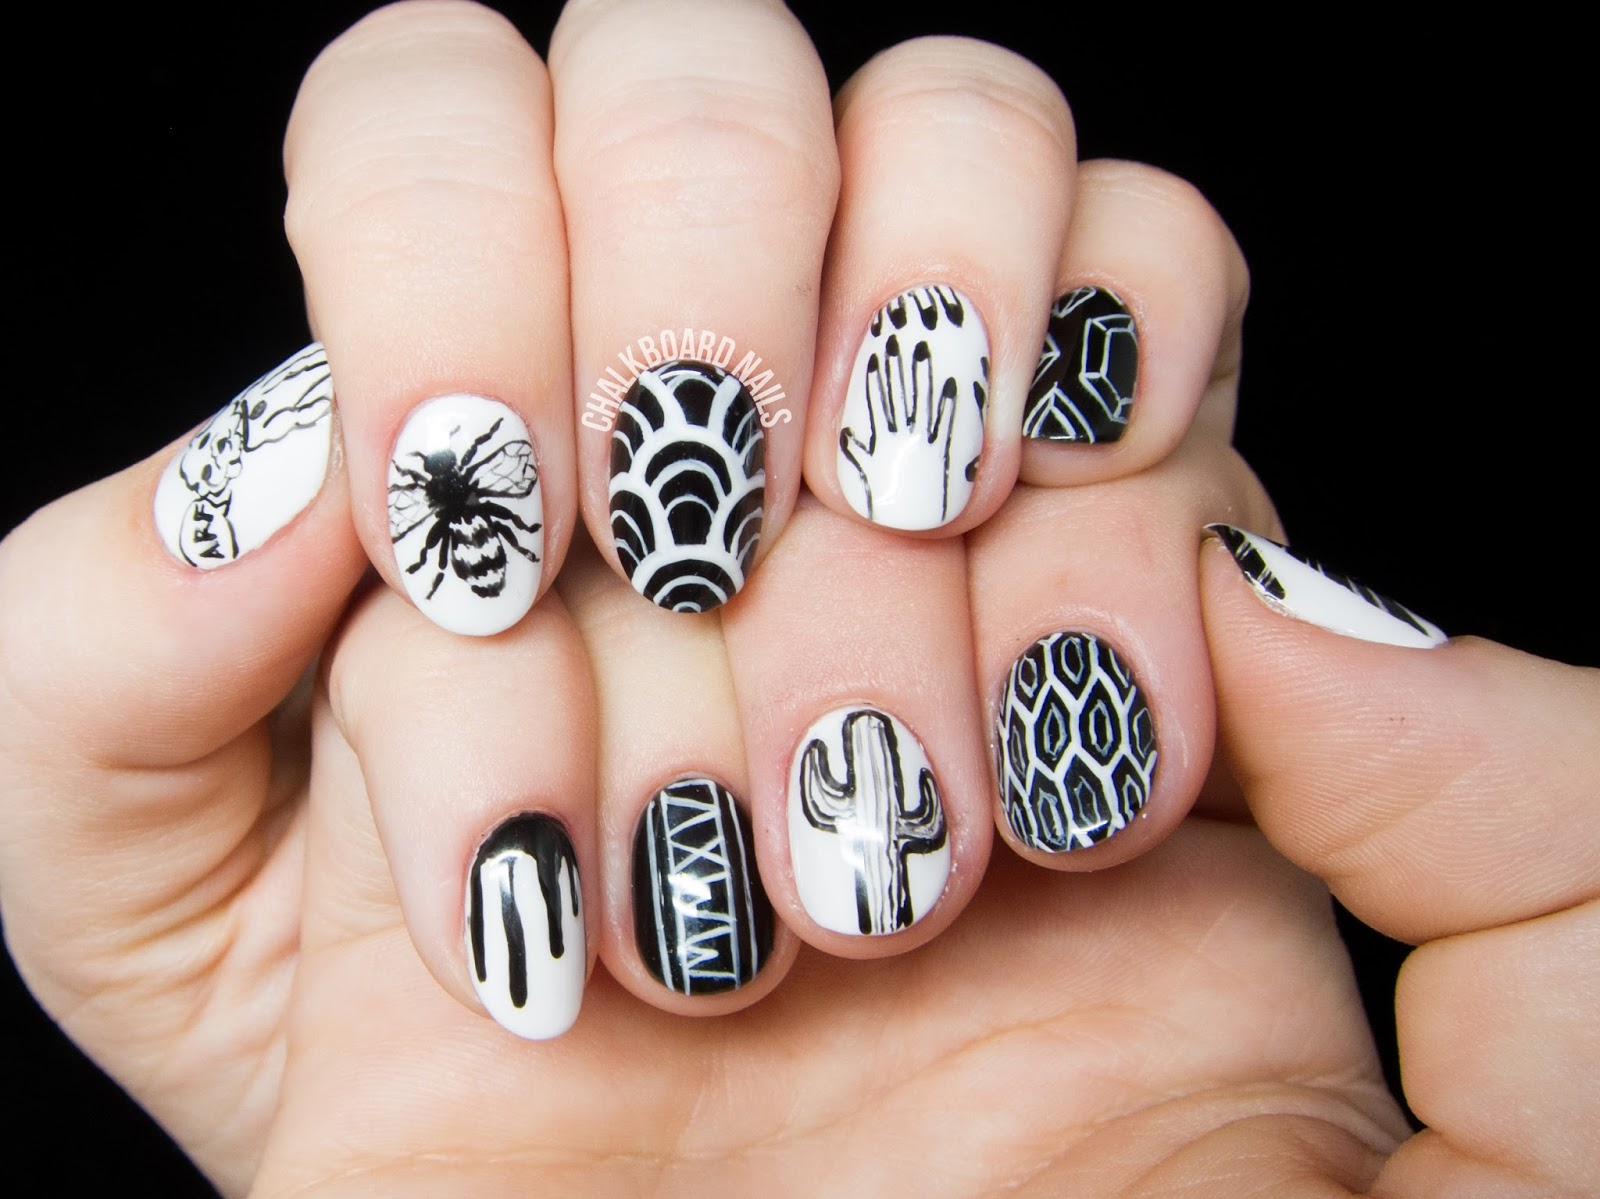 Personalized Black And White Freehand Nail Art Chalkboard Nails